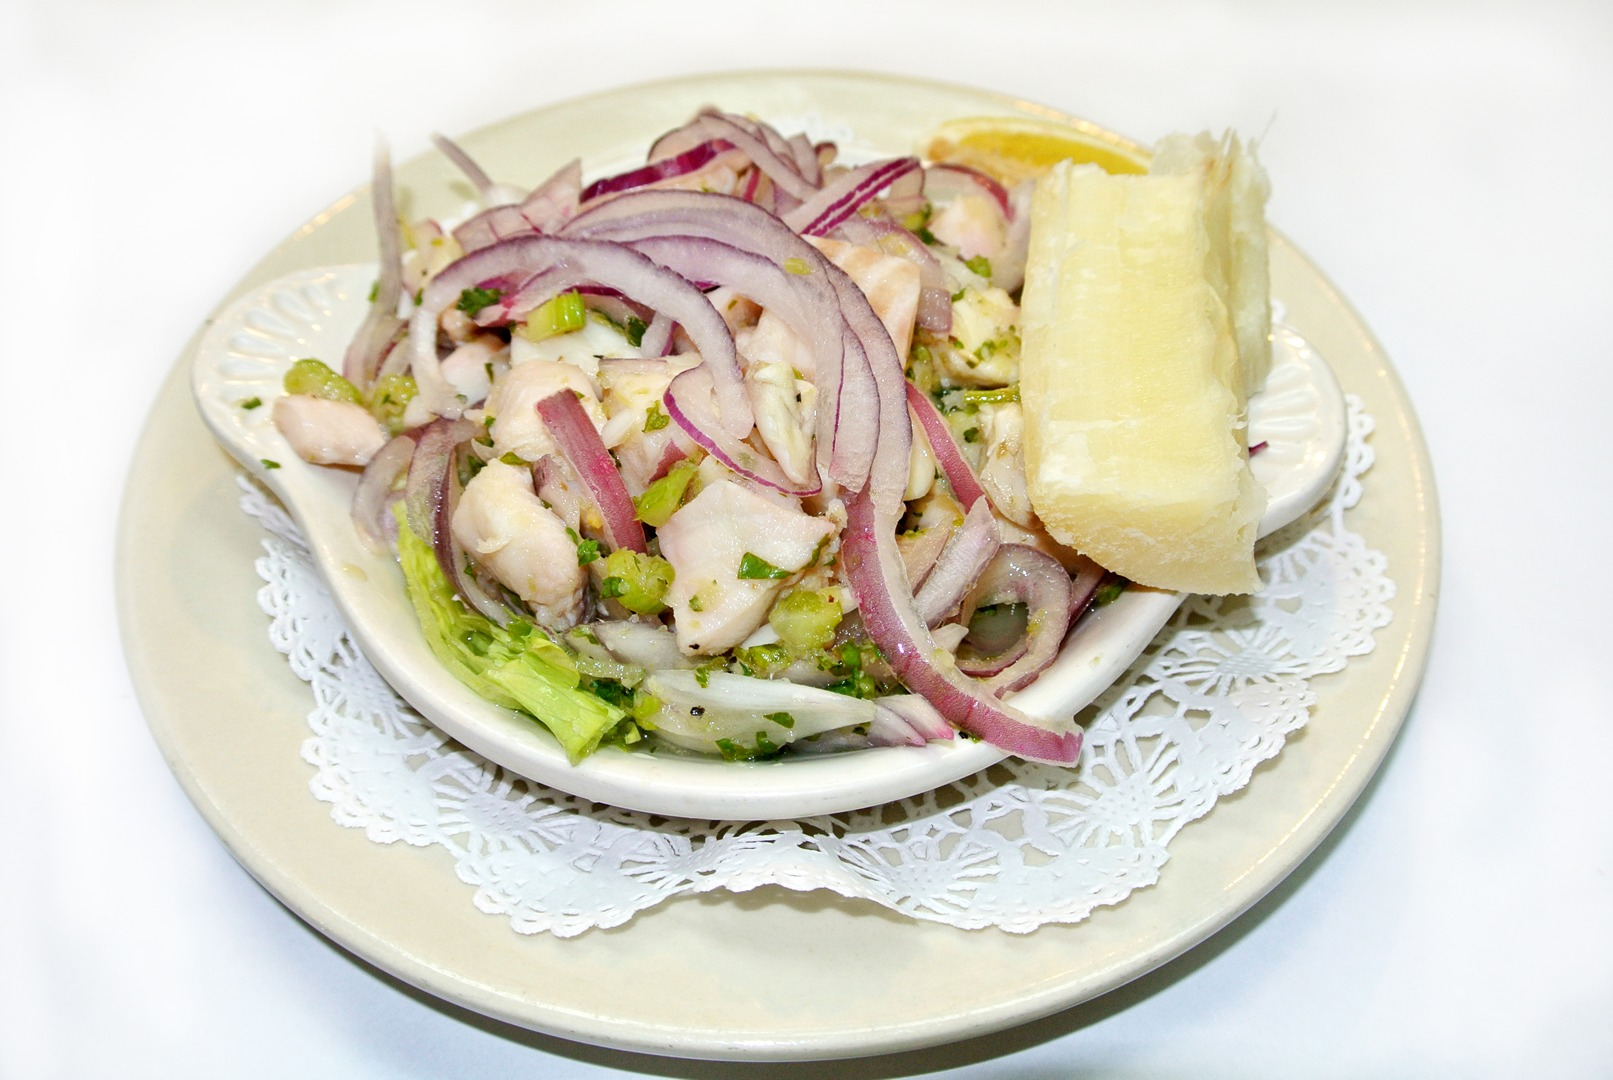 Seafood salad topped with strings of red onions